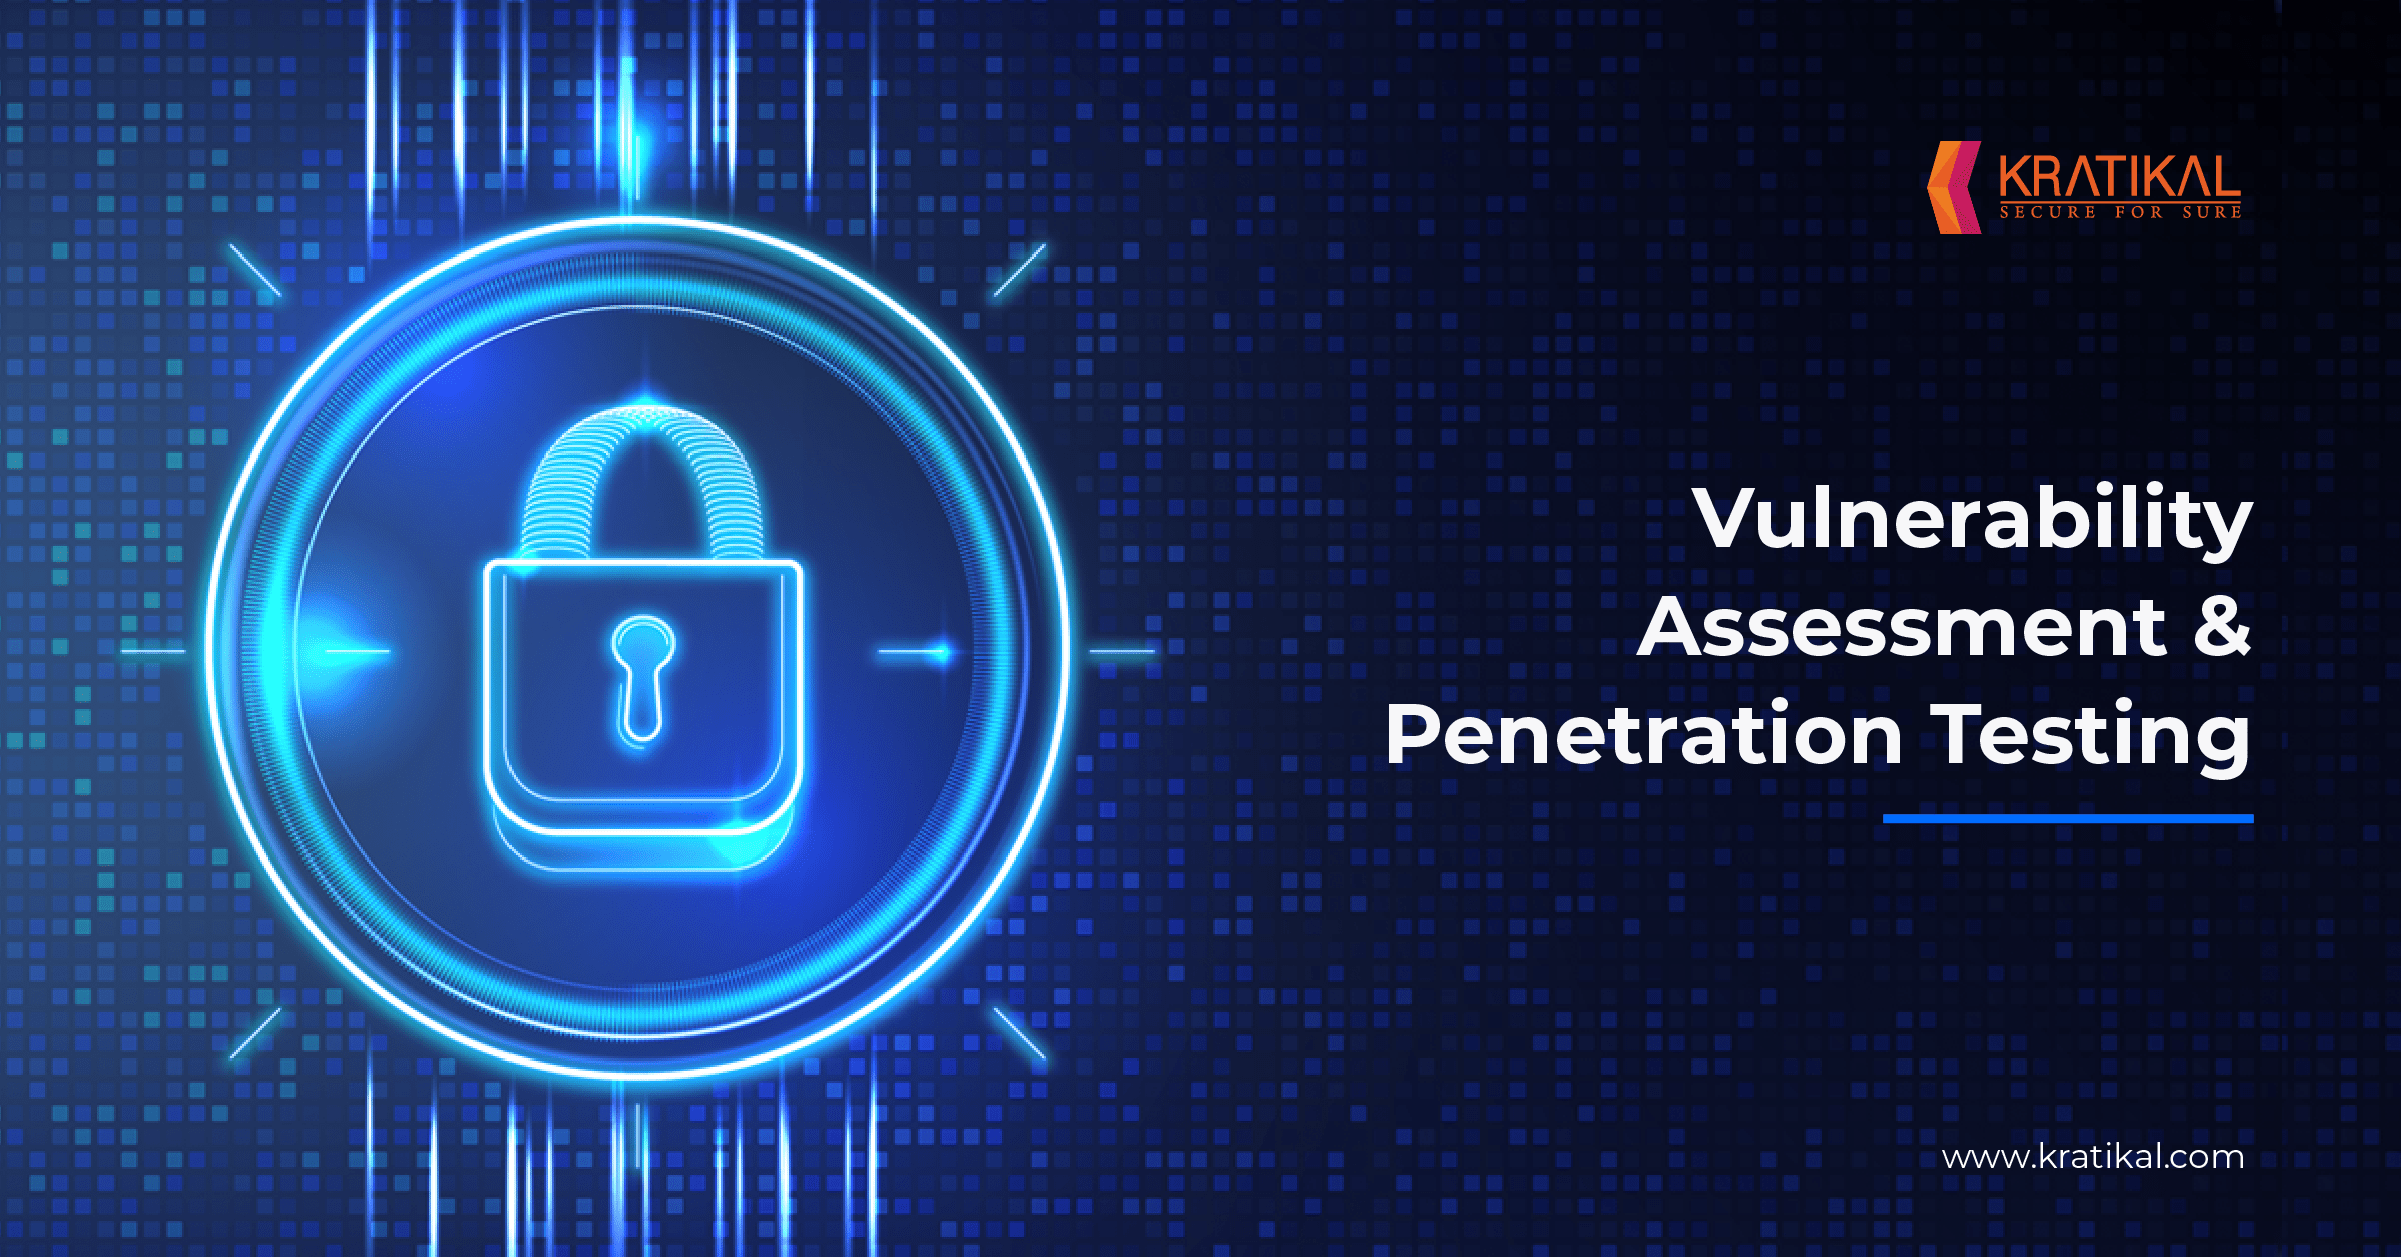 Vulnerabilty assessment and penetration testing